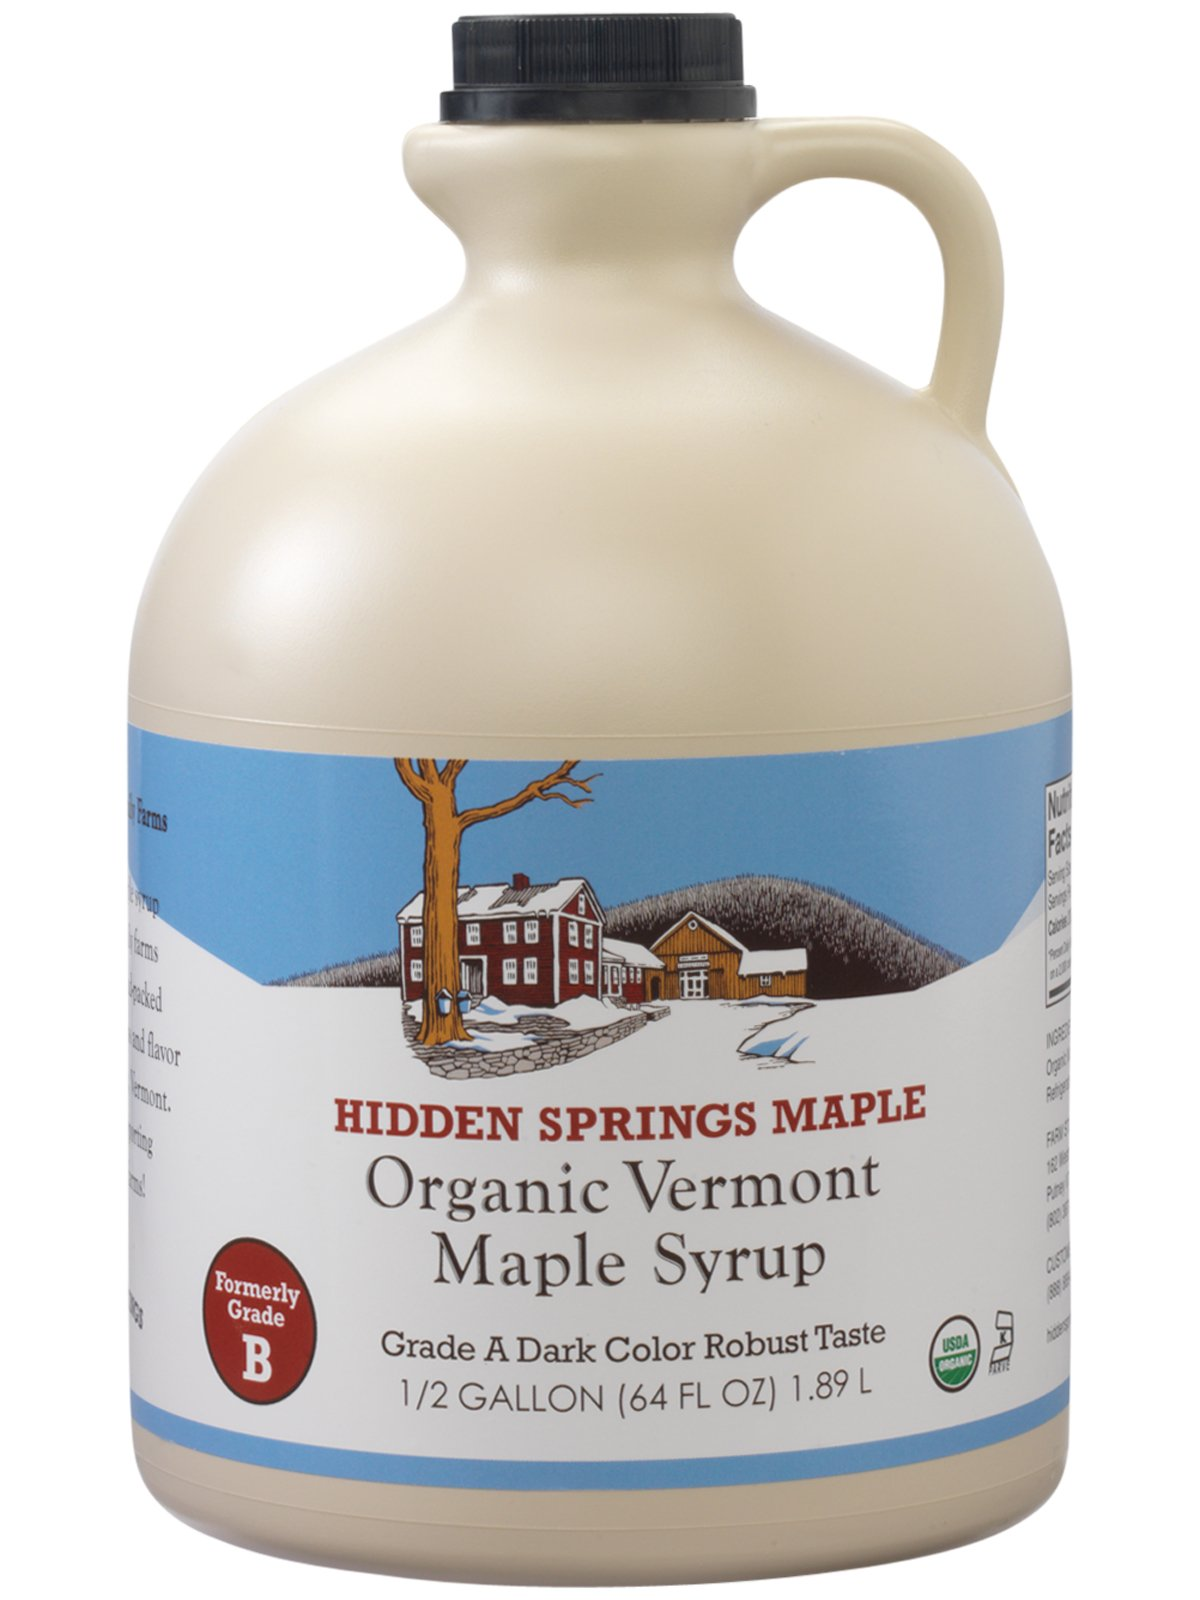 Hidden Springs Organic Vermont Maple Syrup, Dark Robust (Formerly Grade B), 64 Ounce